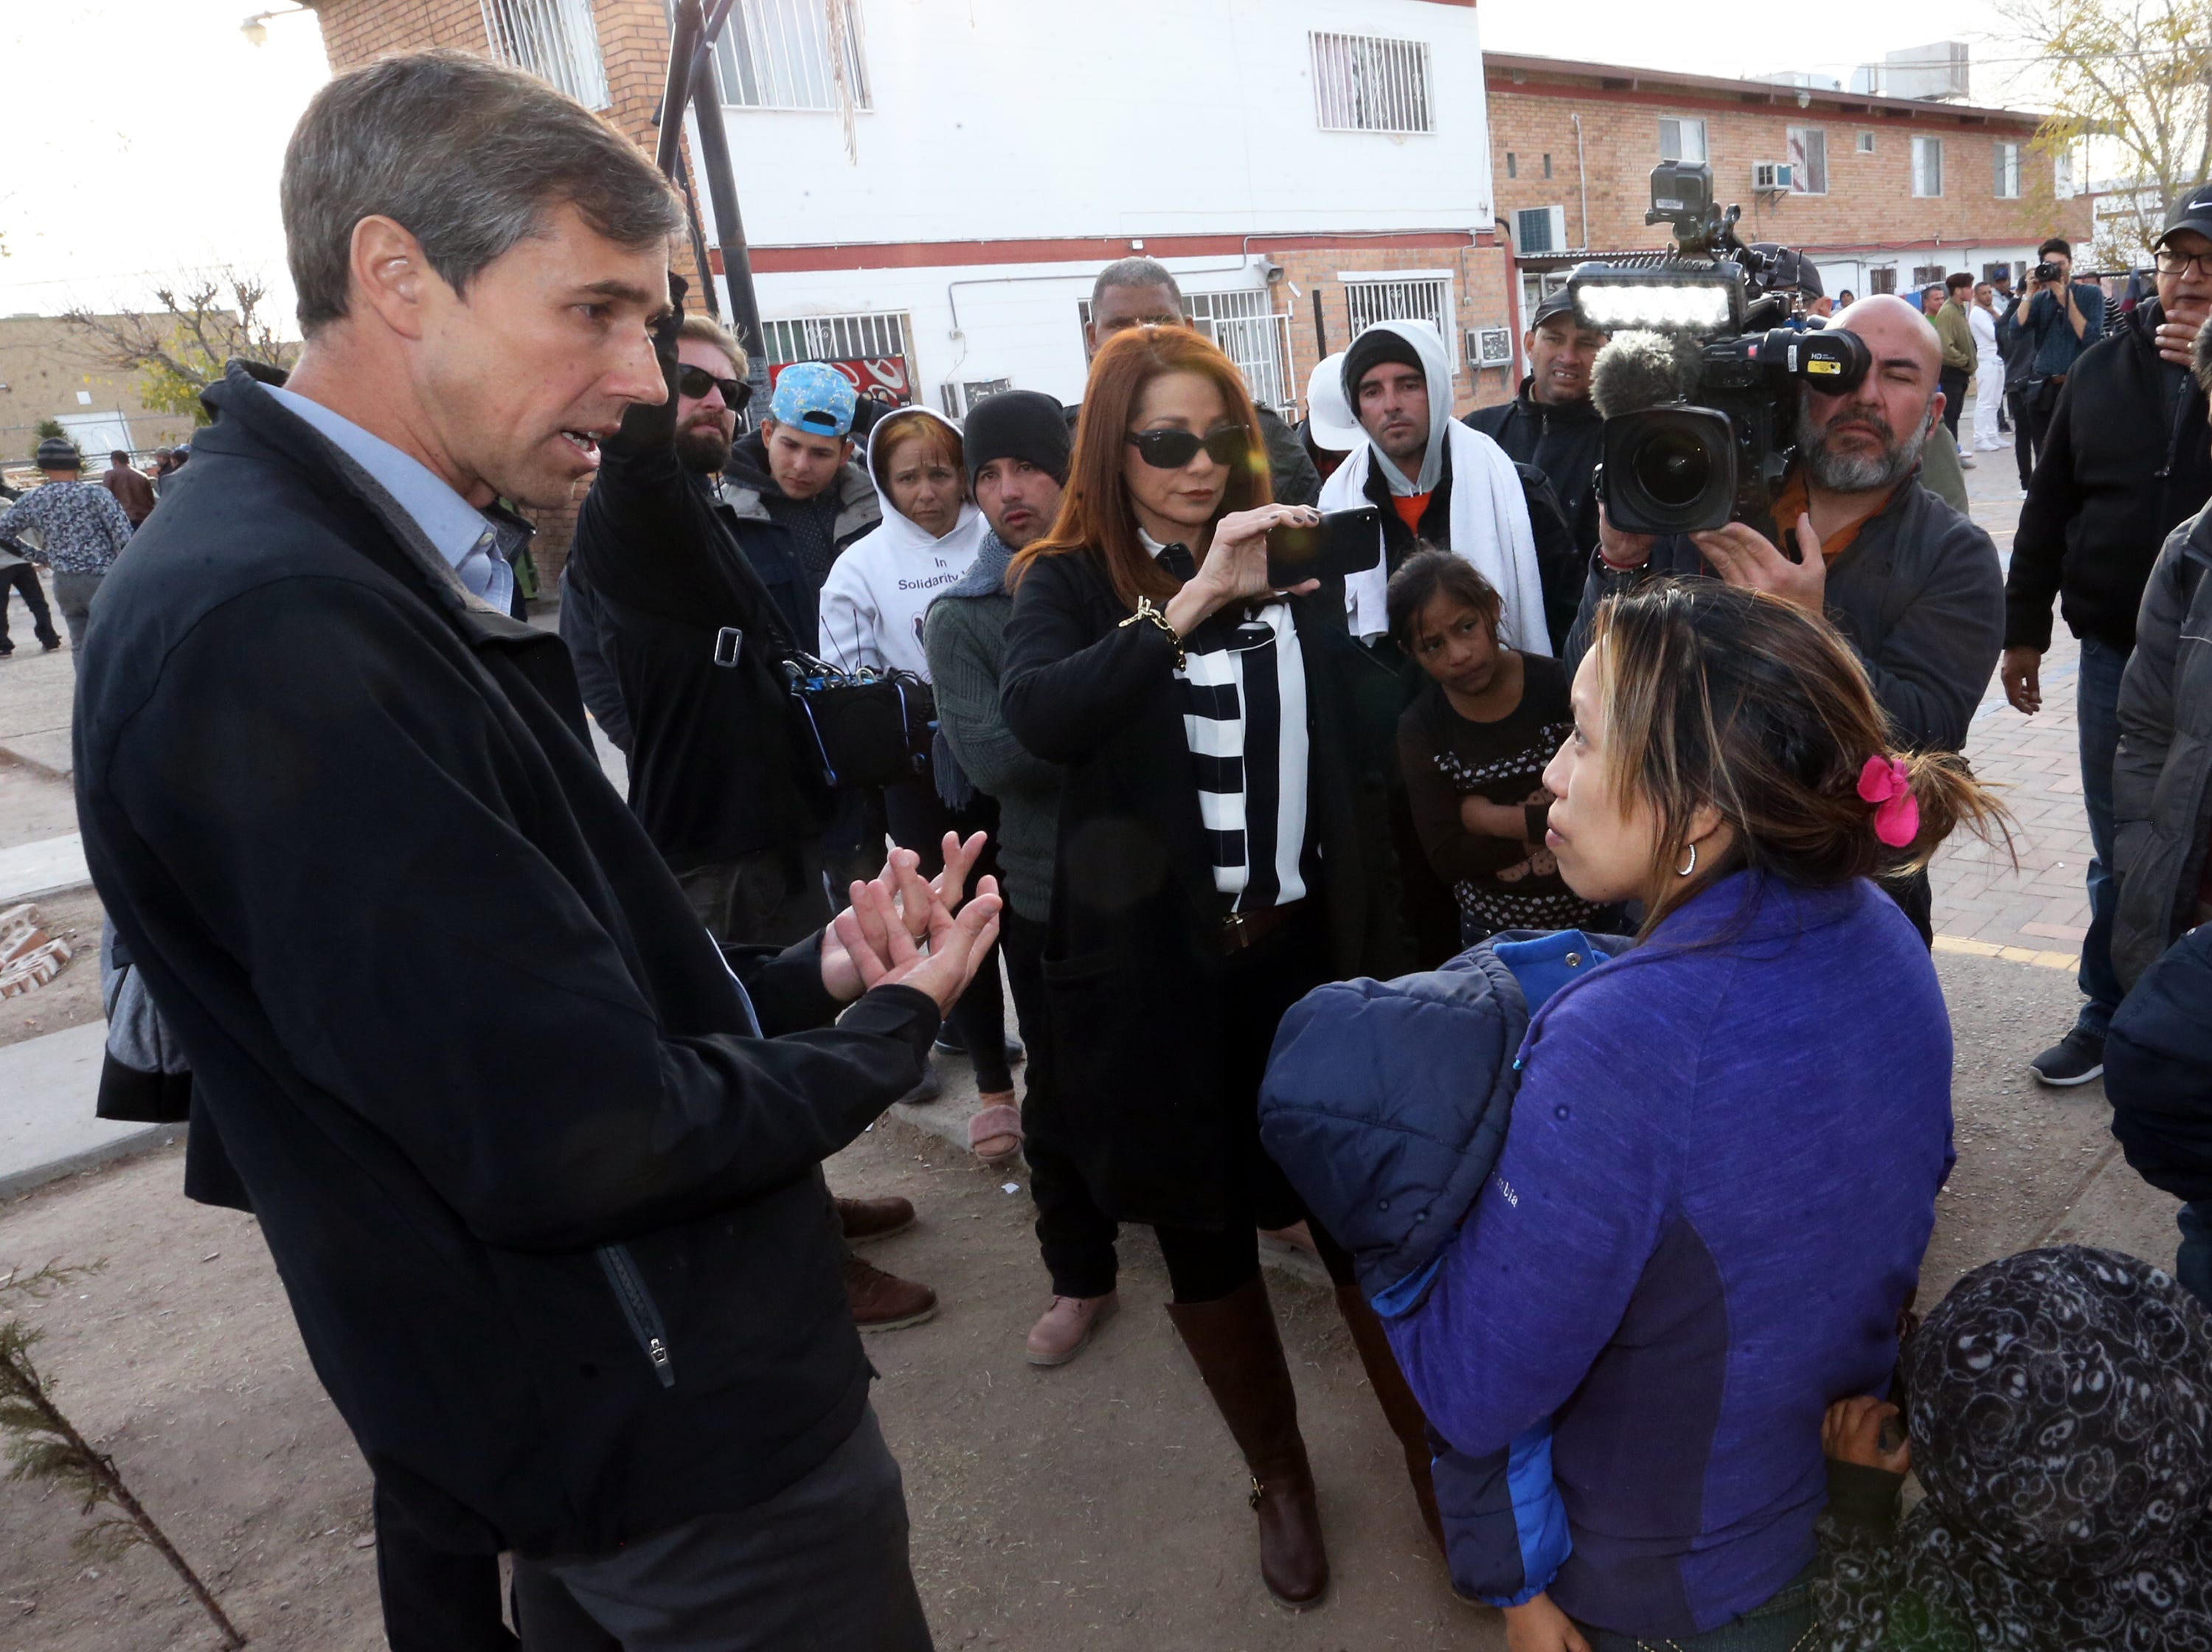 U.S. Rep. Beto O'Rourke talks with a migrant mother at Case del Migrante shelter in Juarez Friday.